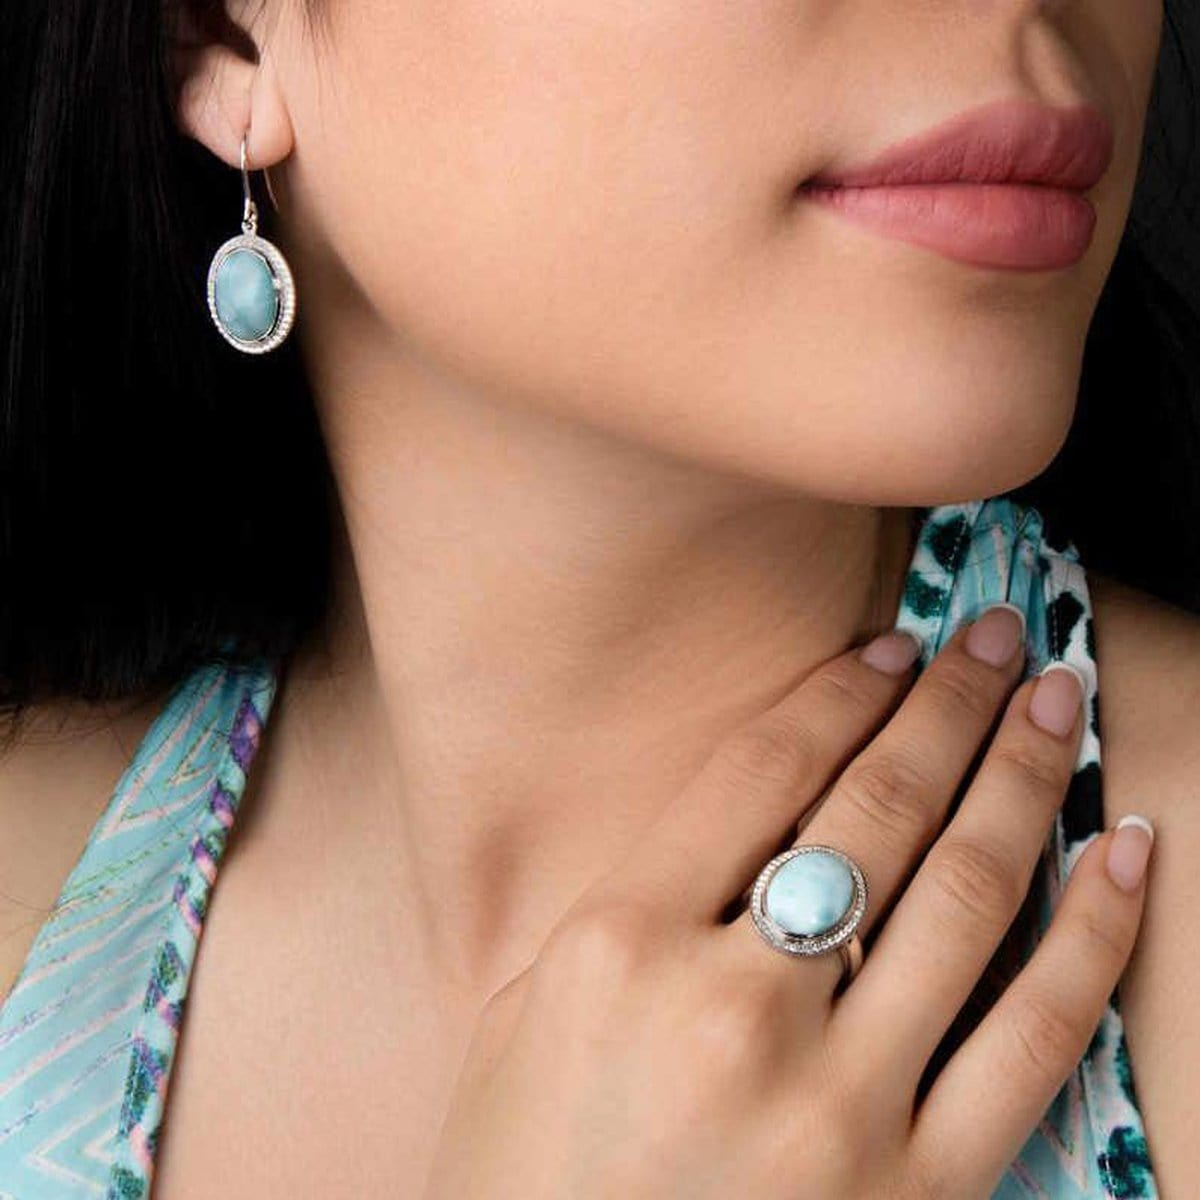 Clarity Oval Earrings - Eclar00-00-Marahlago Larimar-Renee Taylor Gallery